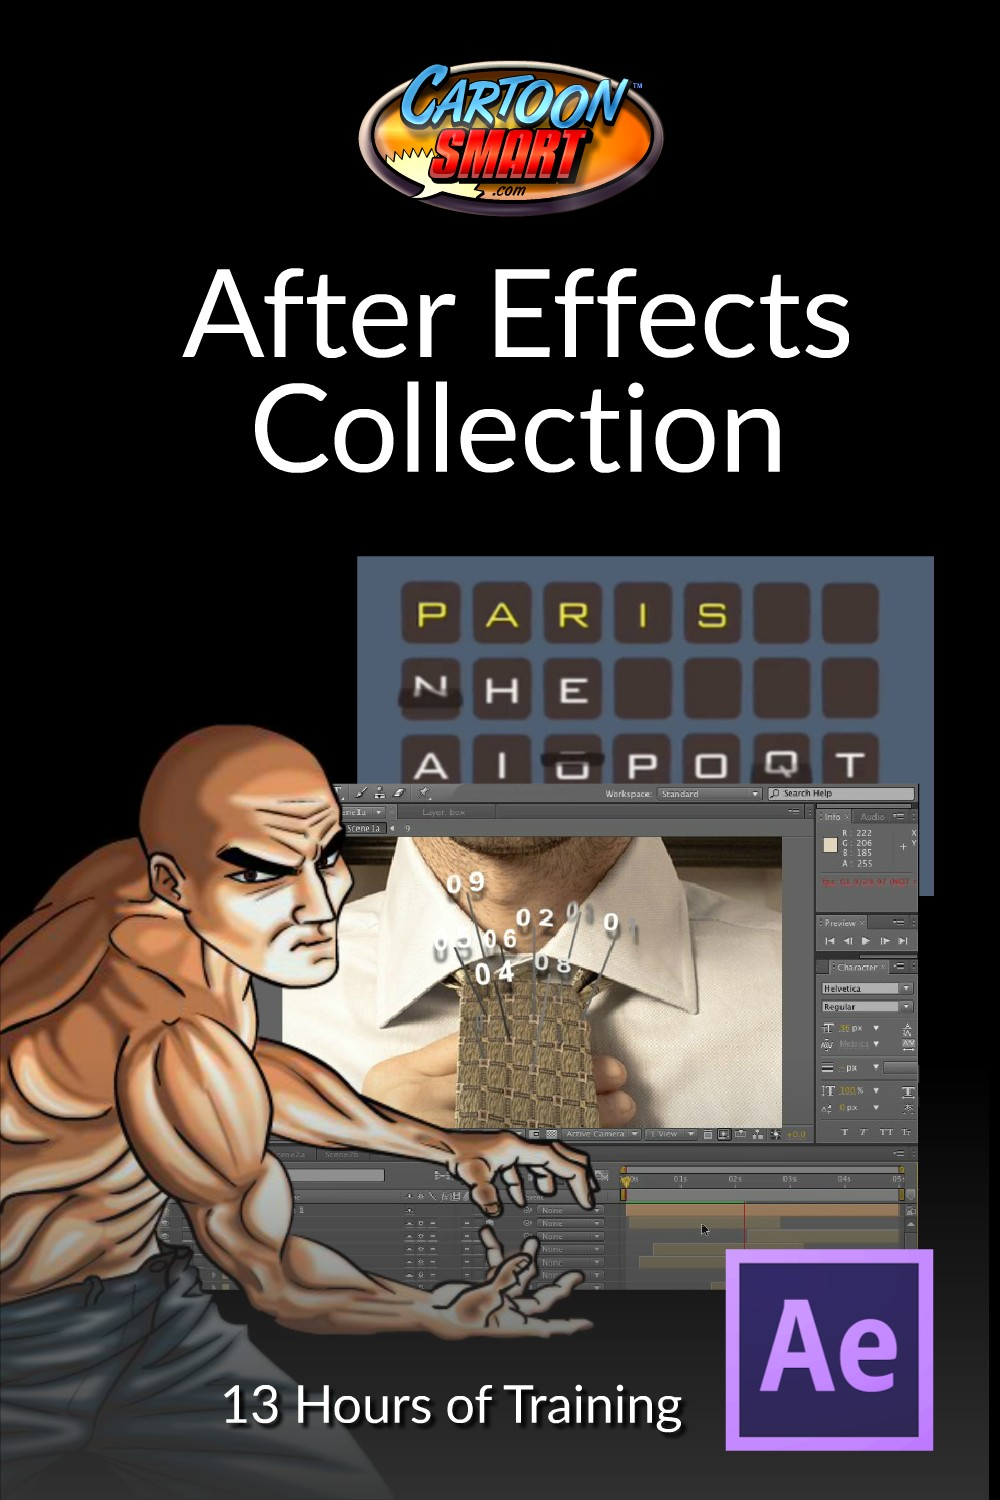 After Effects Training Collection